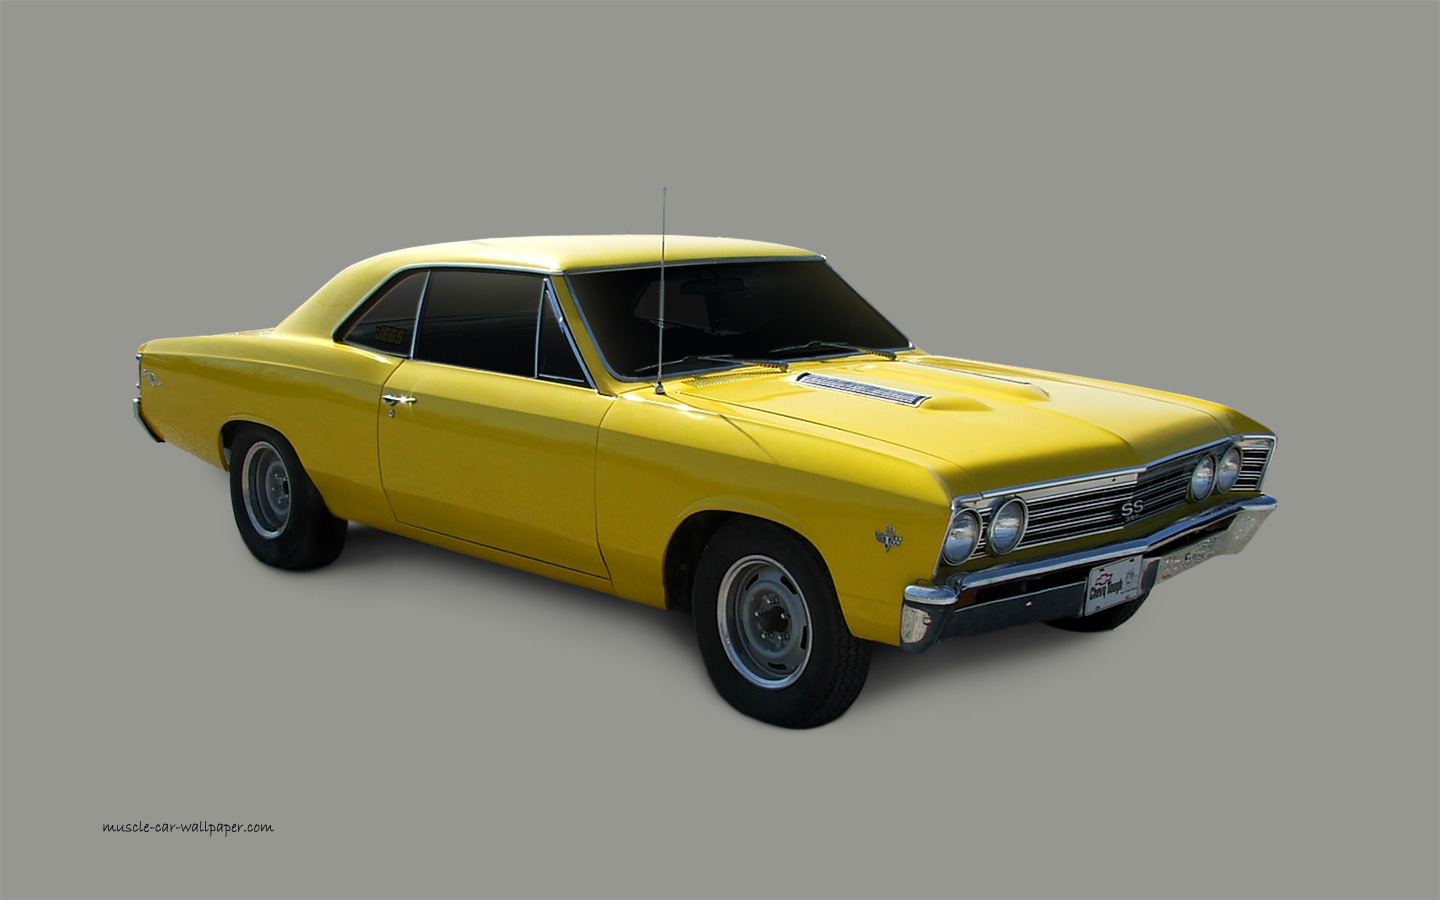 1967 chevelle ss wallpaper and more 1967 chevelle ss Car Pictures 1440x900